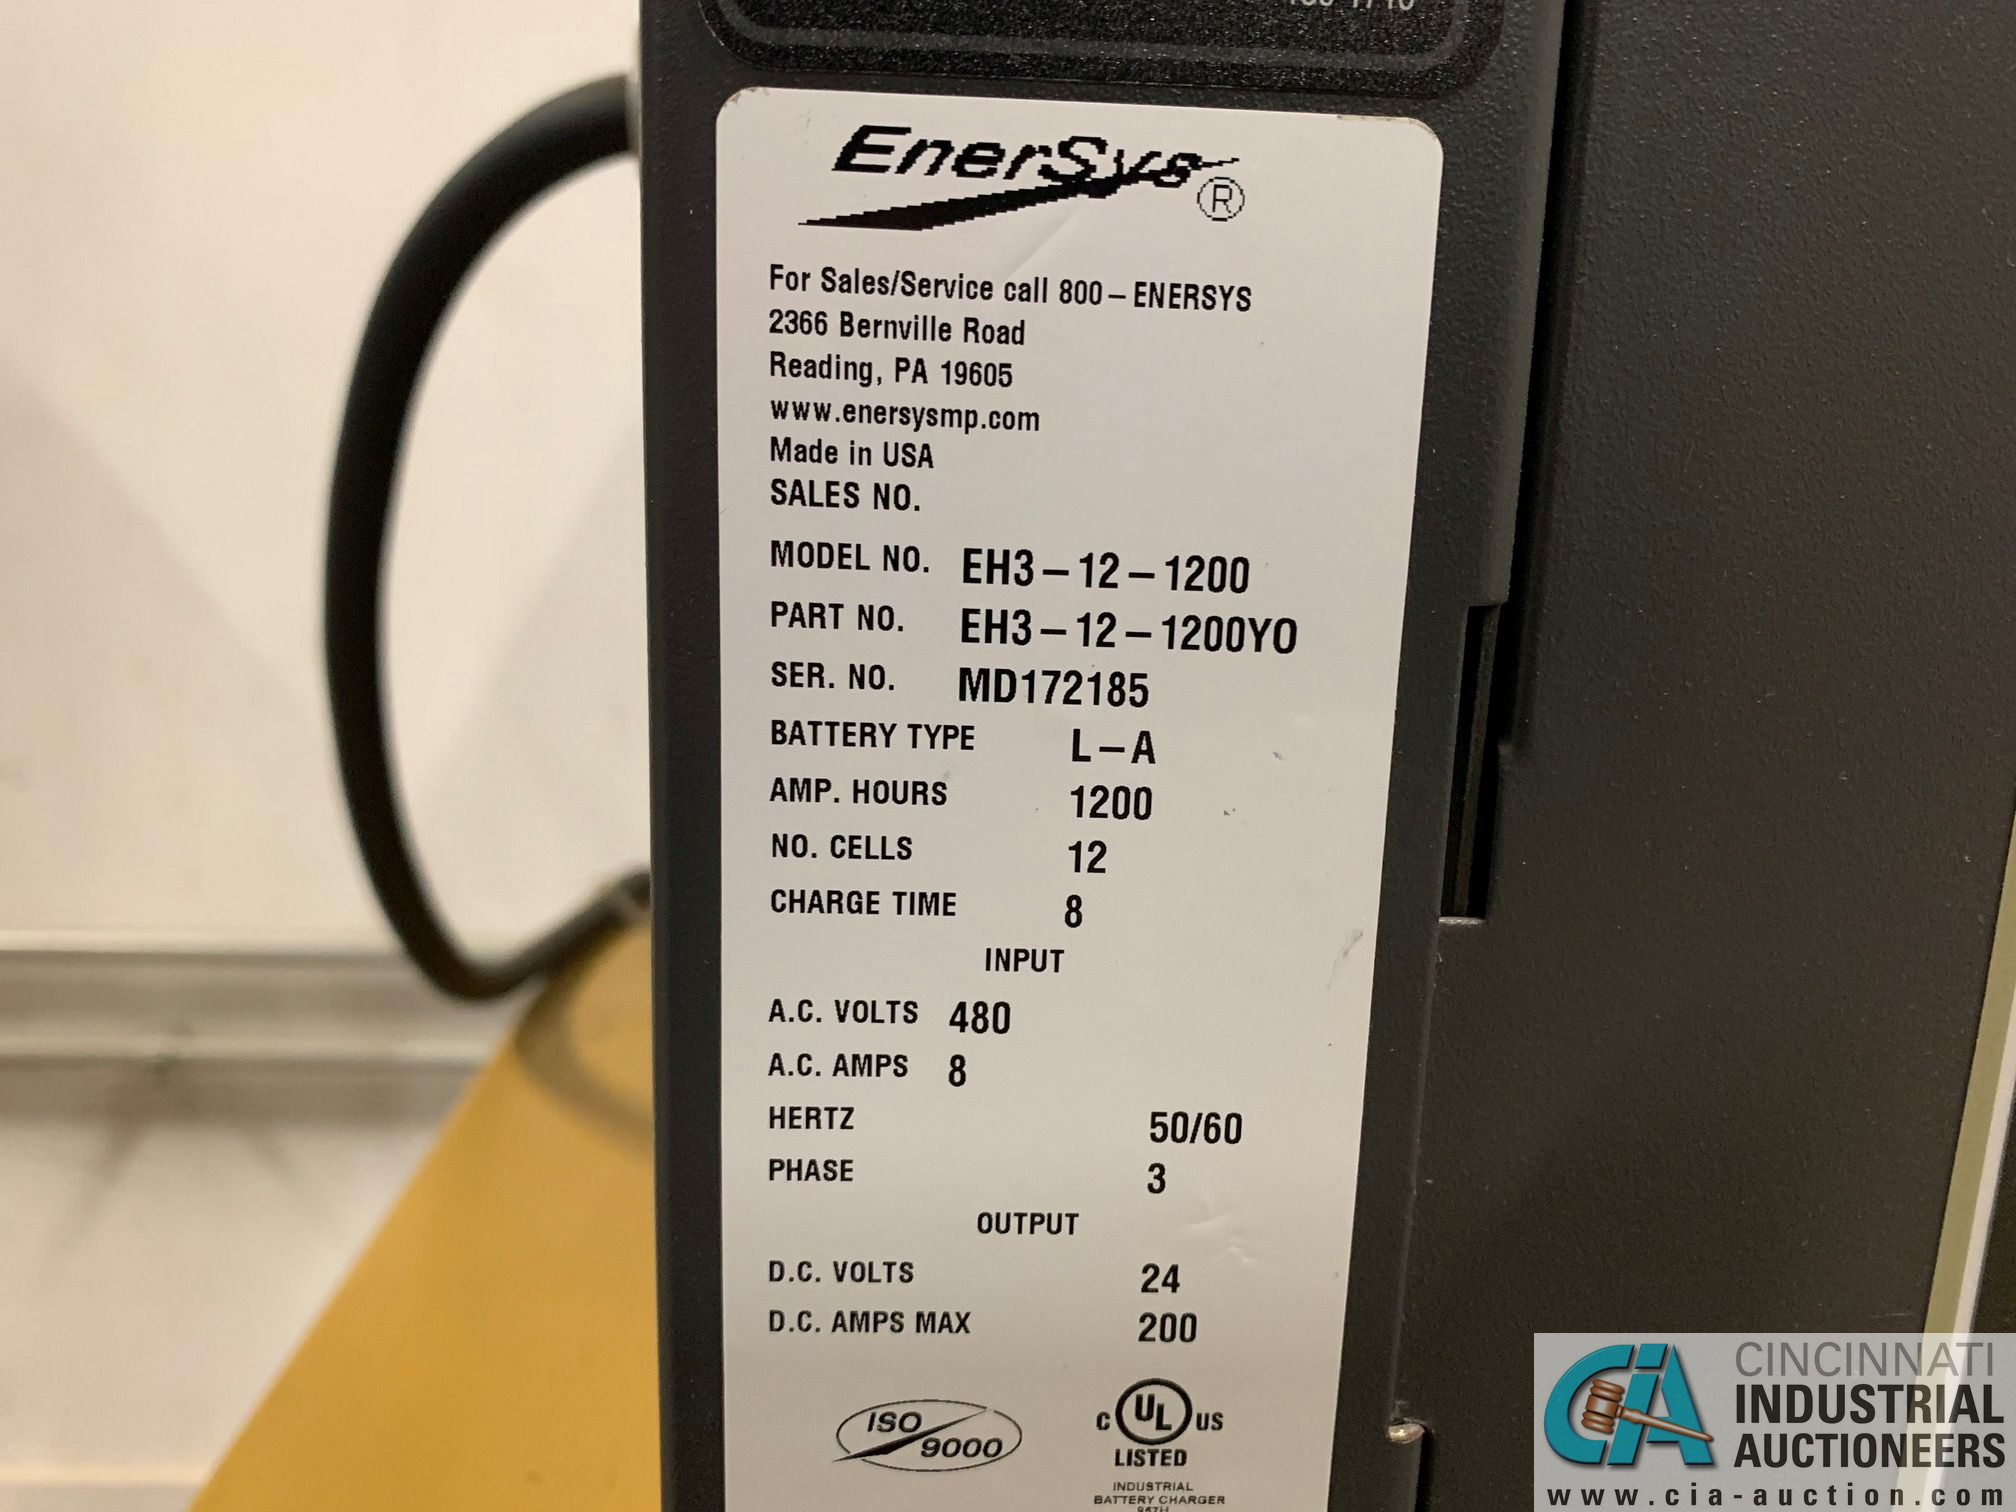 ENERSYS MODEL EH3-12-1200 ENFORCER HF BATTERY CHARGER WITH STAND **LOCATED BY START OF SALE** - Image 4 of 4